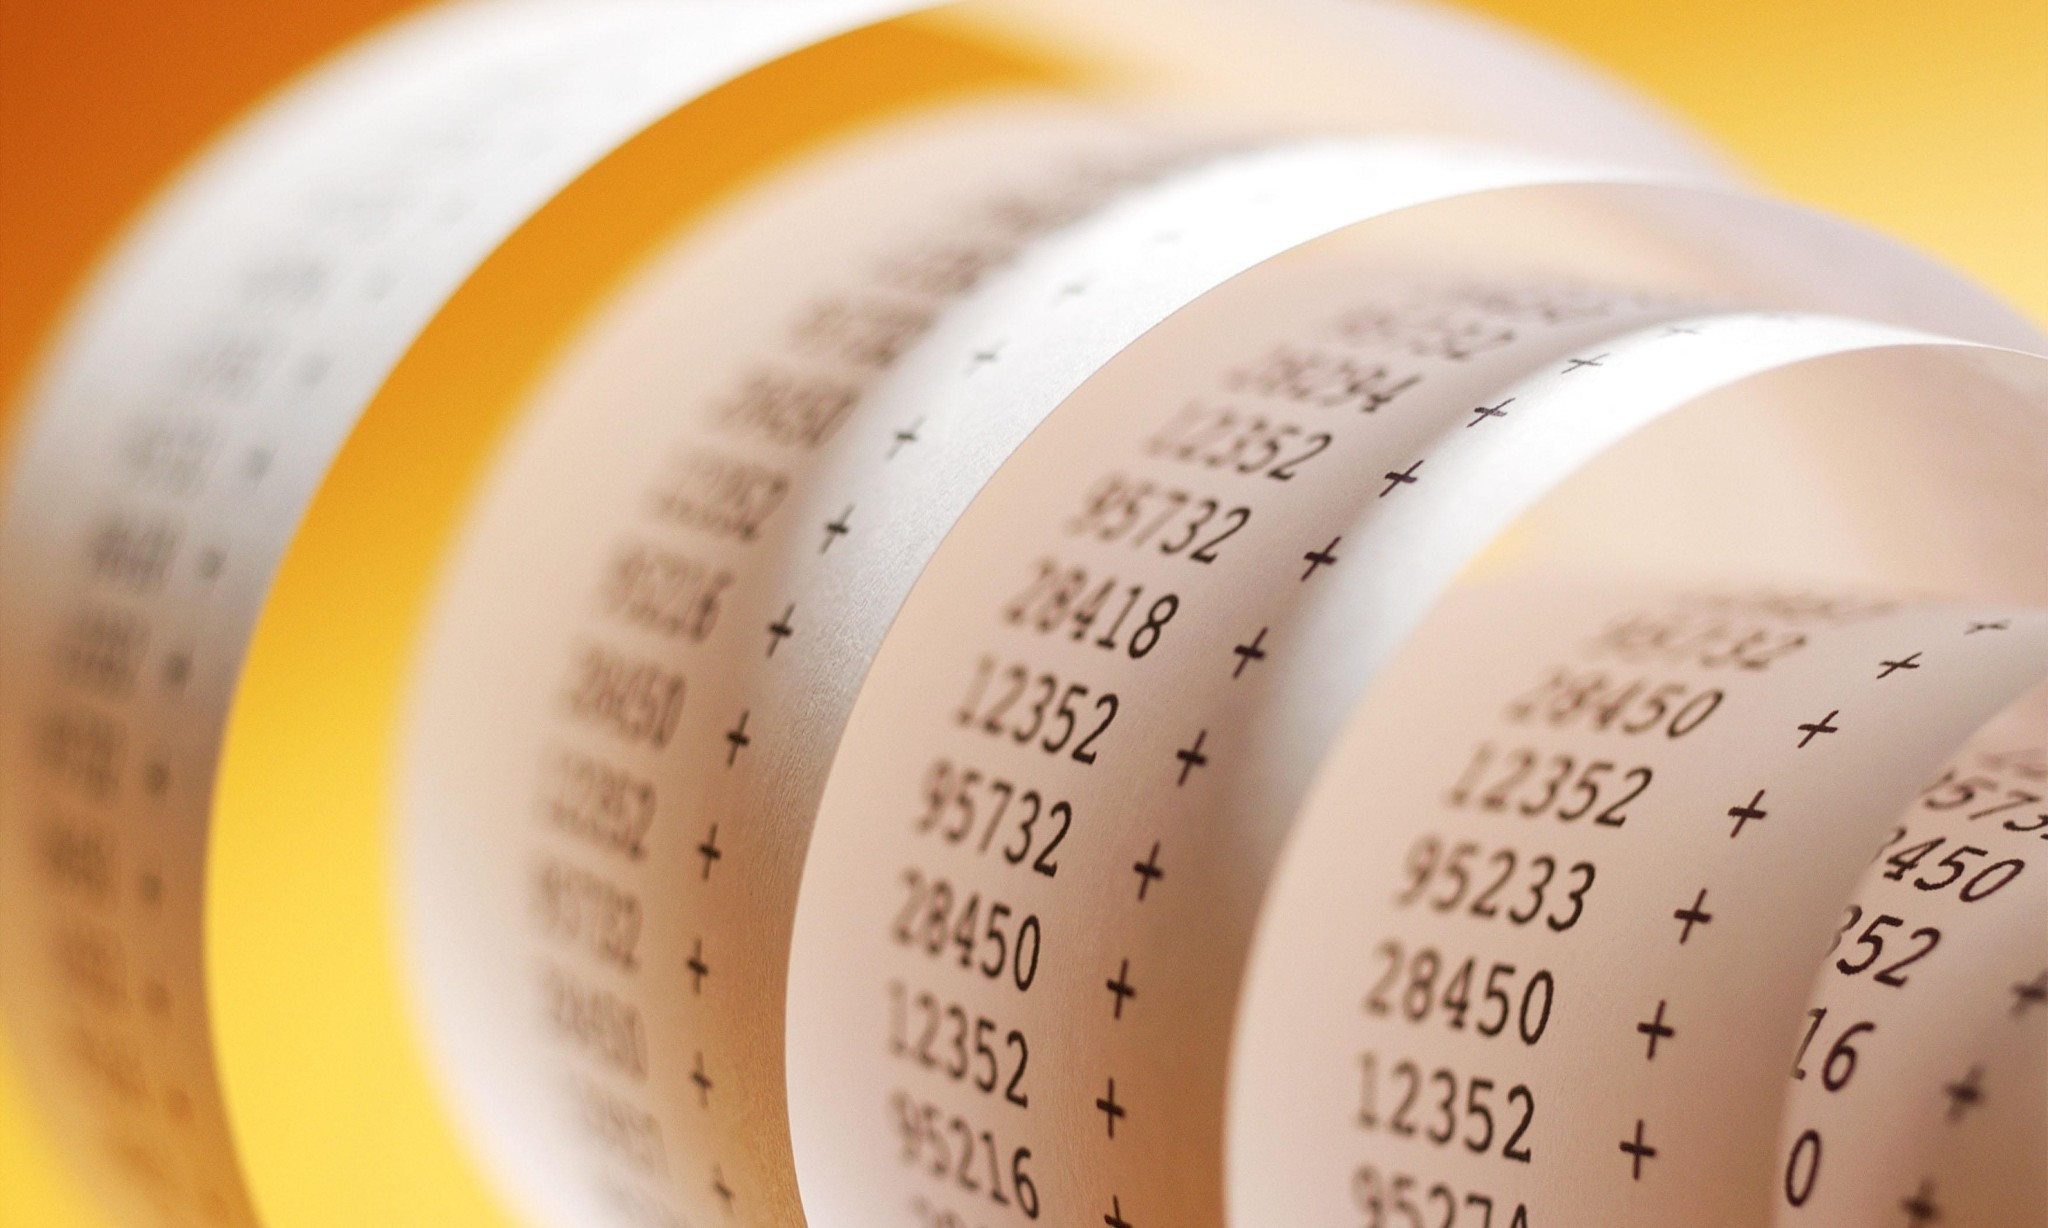 Largest prime number discovered – with more than 23m digits